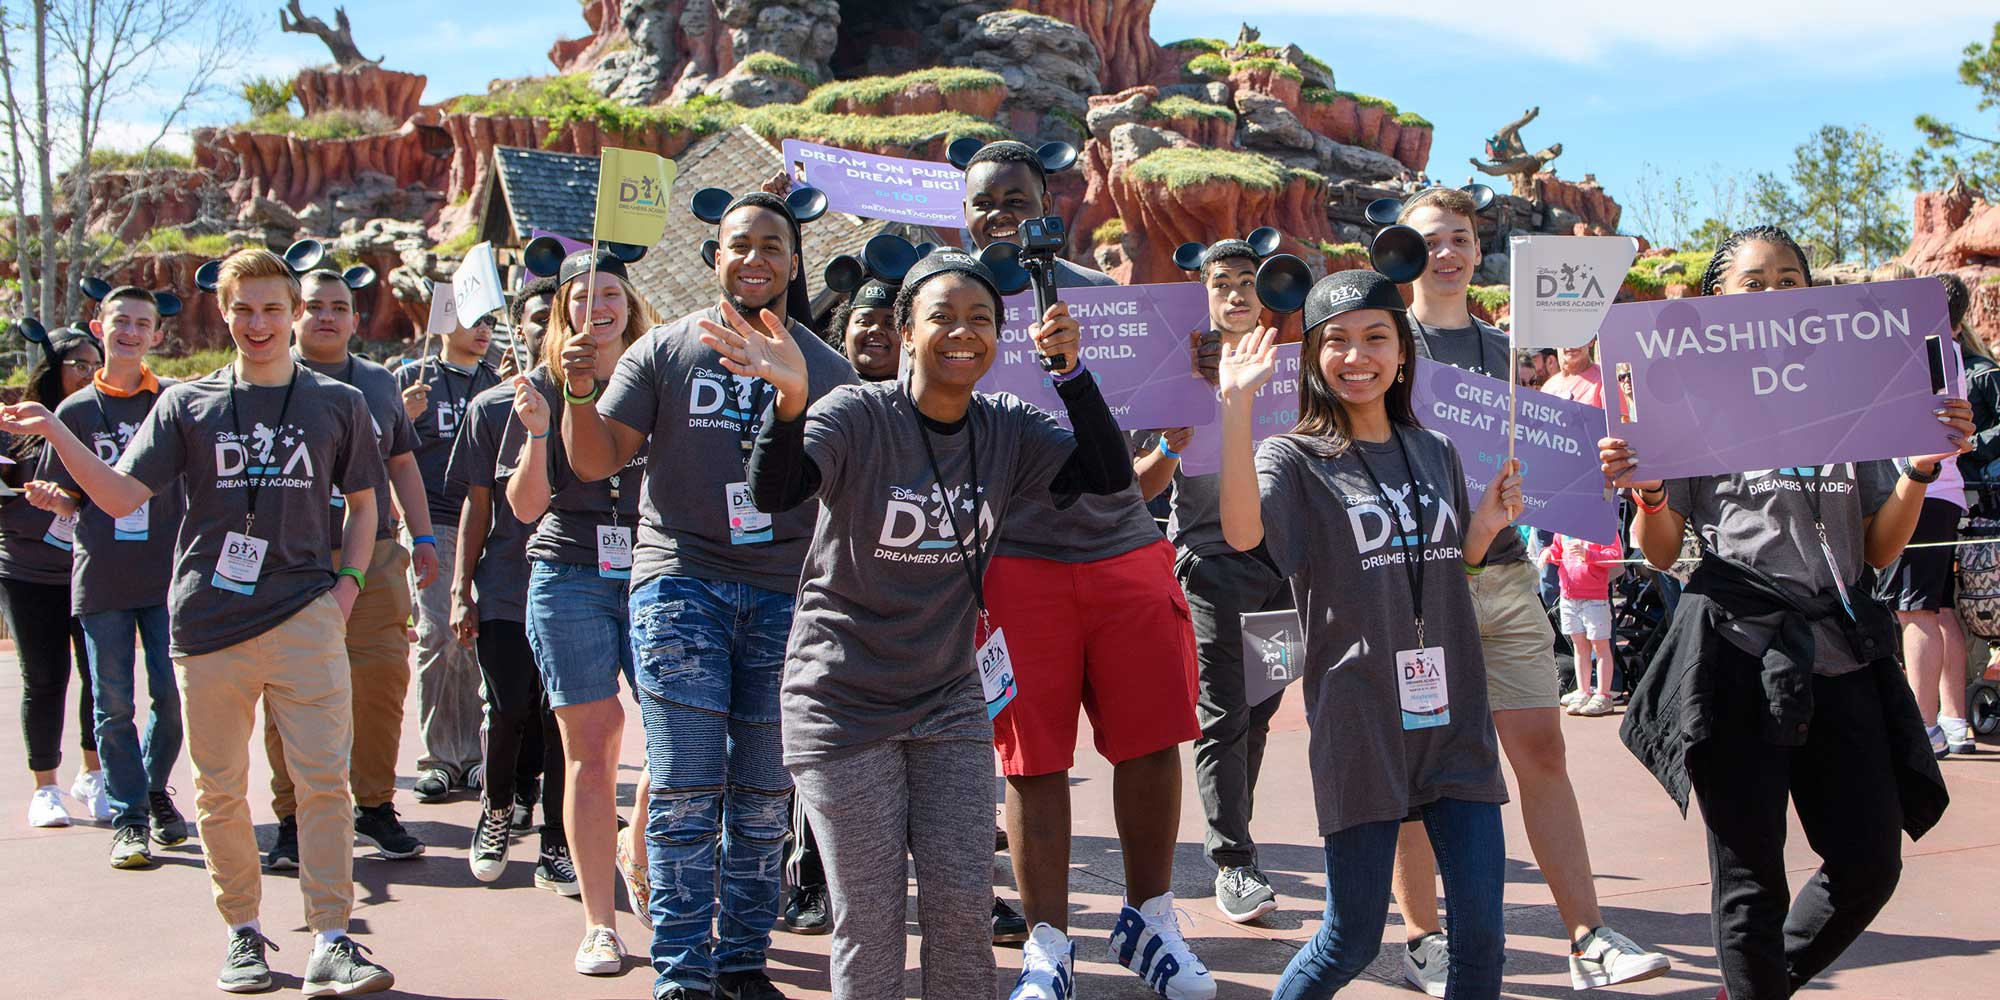 Teenage members of the Disney Dreamers Academy, wearing matching tee shirts and Mickey Mouse ears, hold small Academy flags and signs with inspiring messages